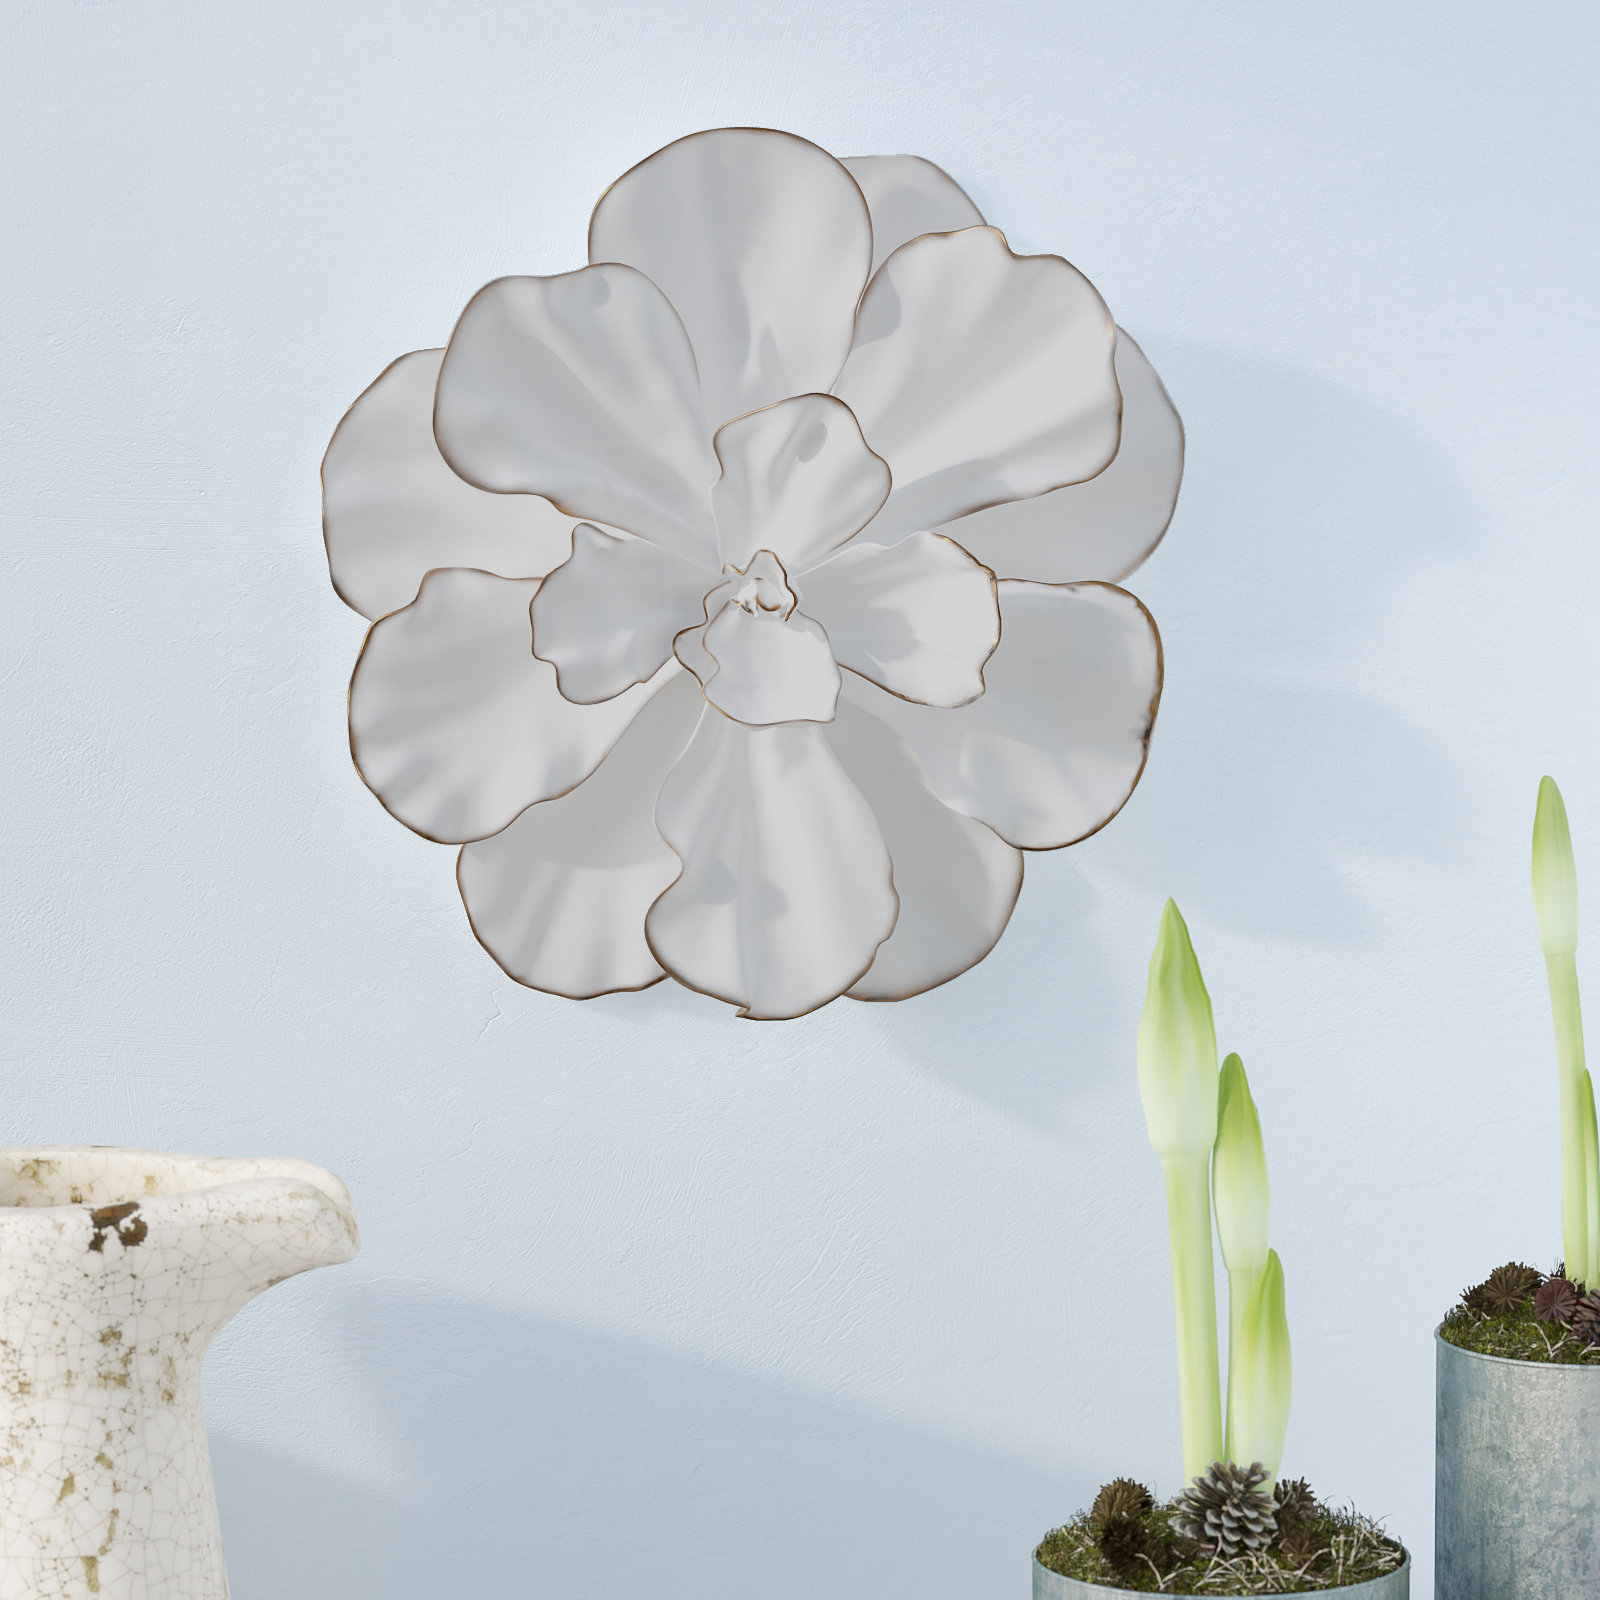 Gold Flower Wall Decor   Wayfair Within Three Flowers On Vine Wall Decor (View 11 of 30)